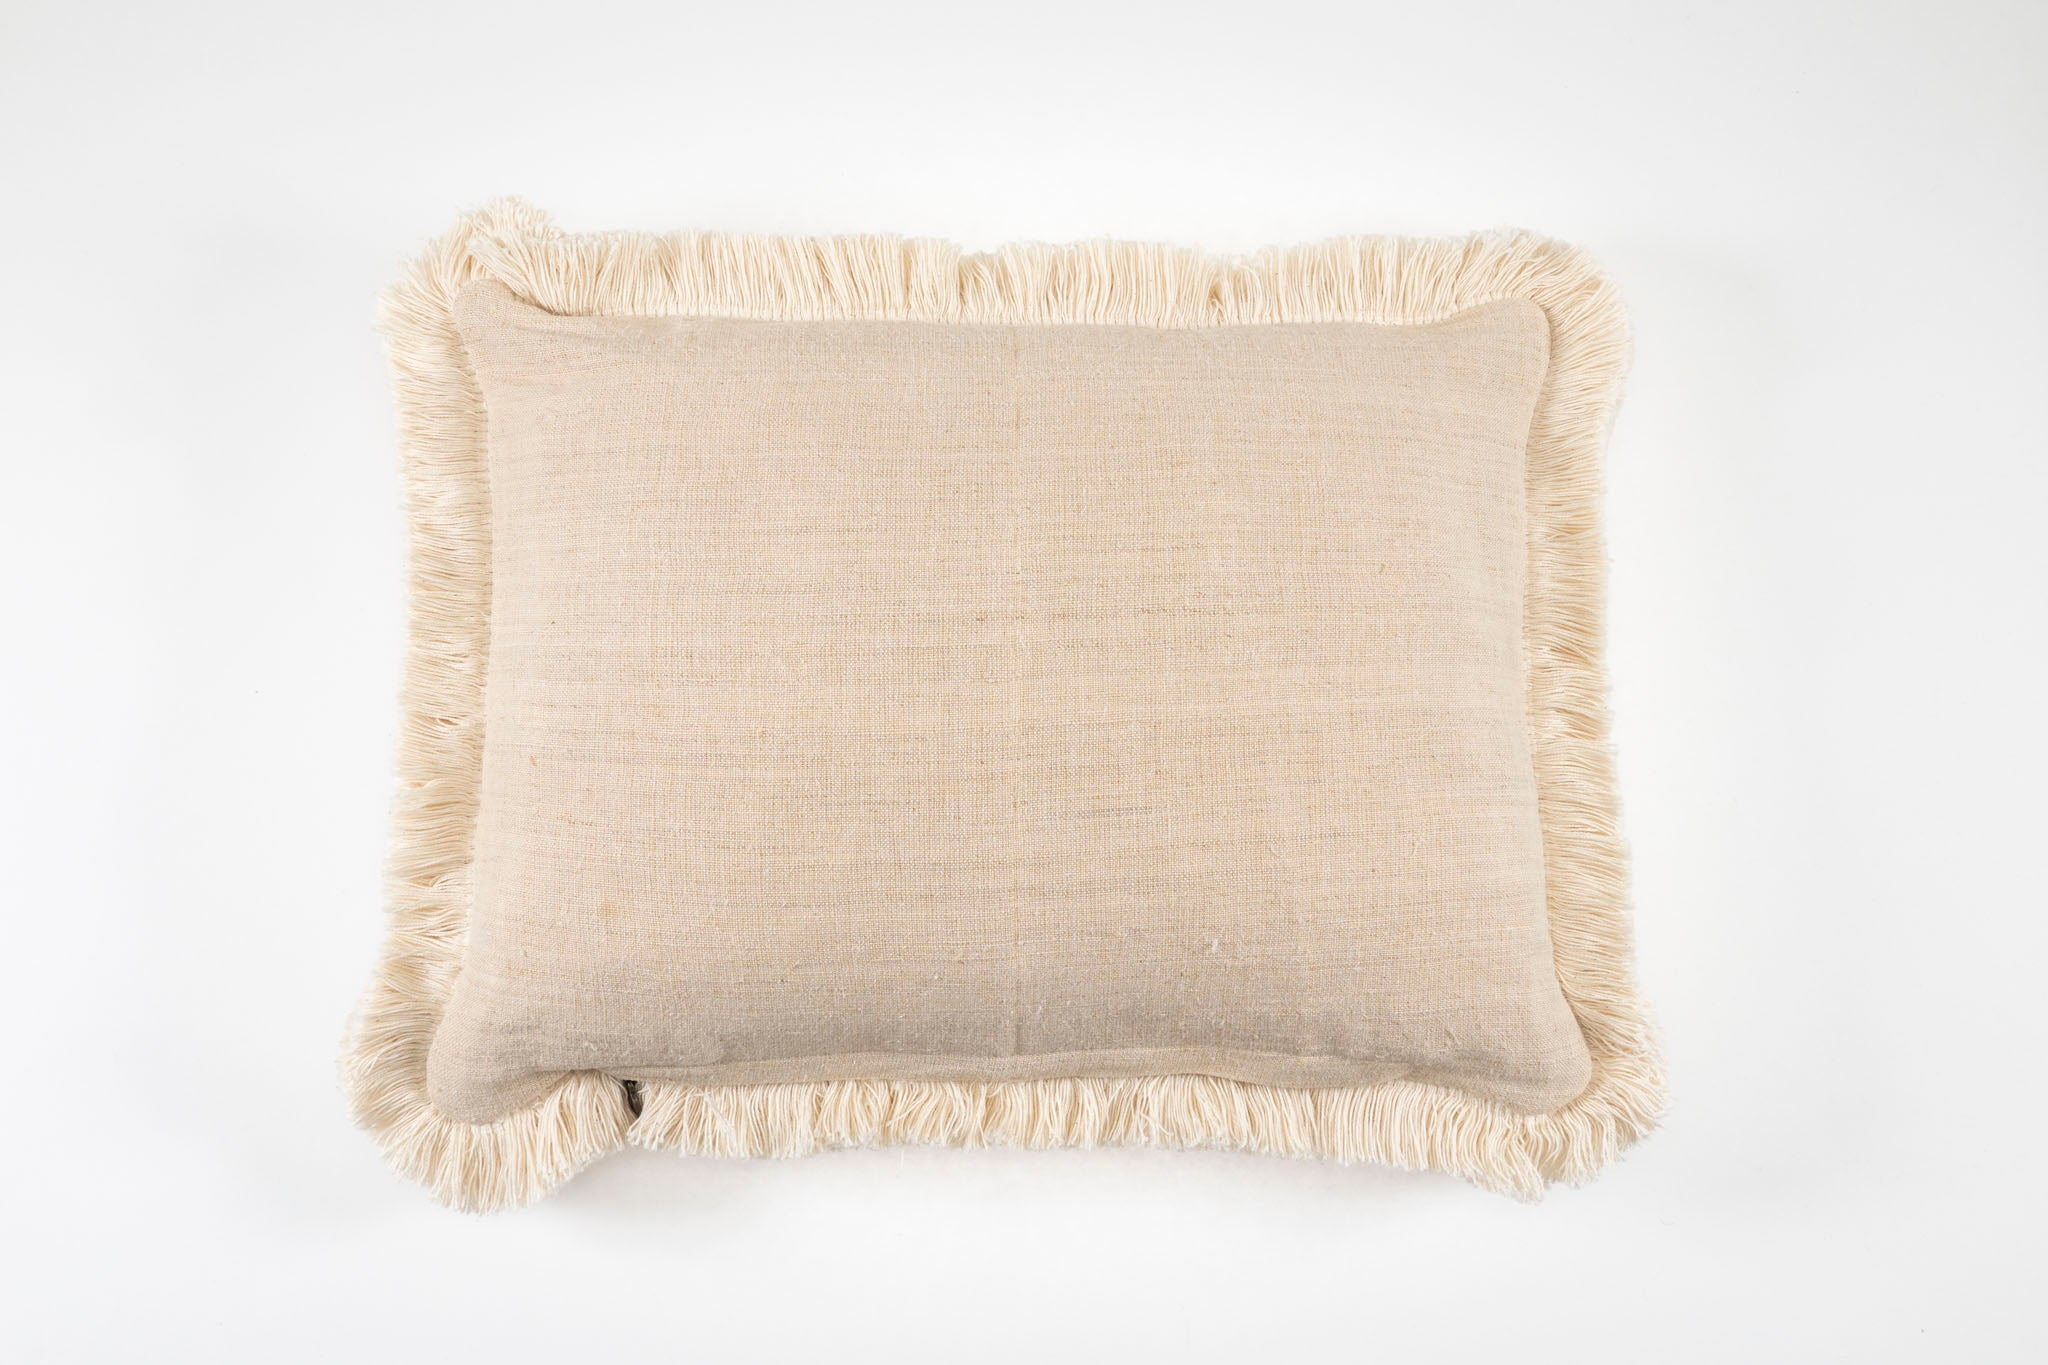 Pillow: Embroidered antique and vintage Hungarian hemp - P008